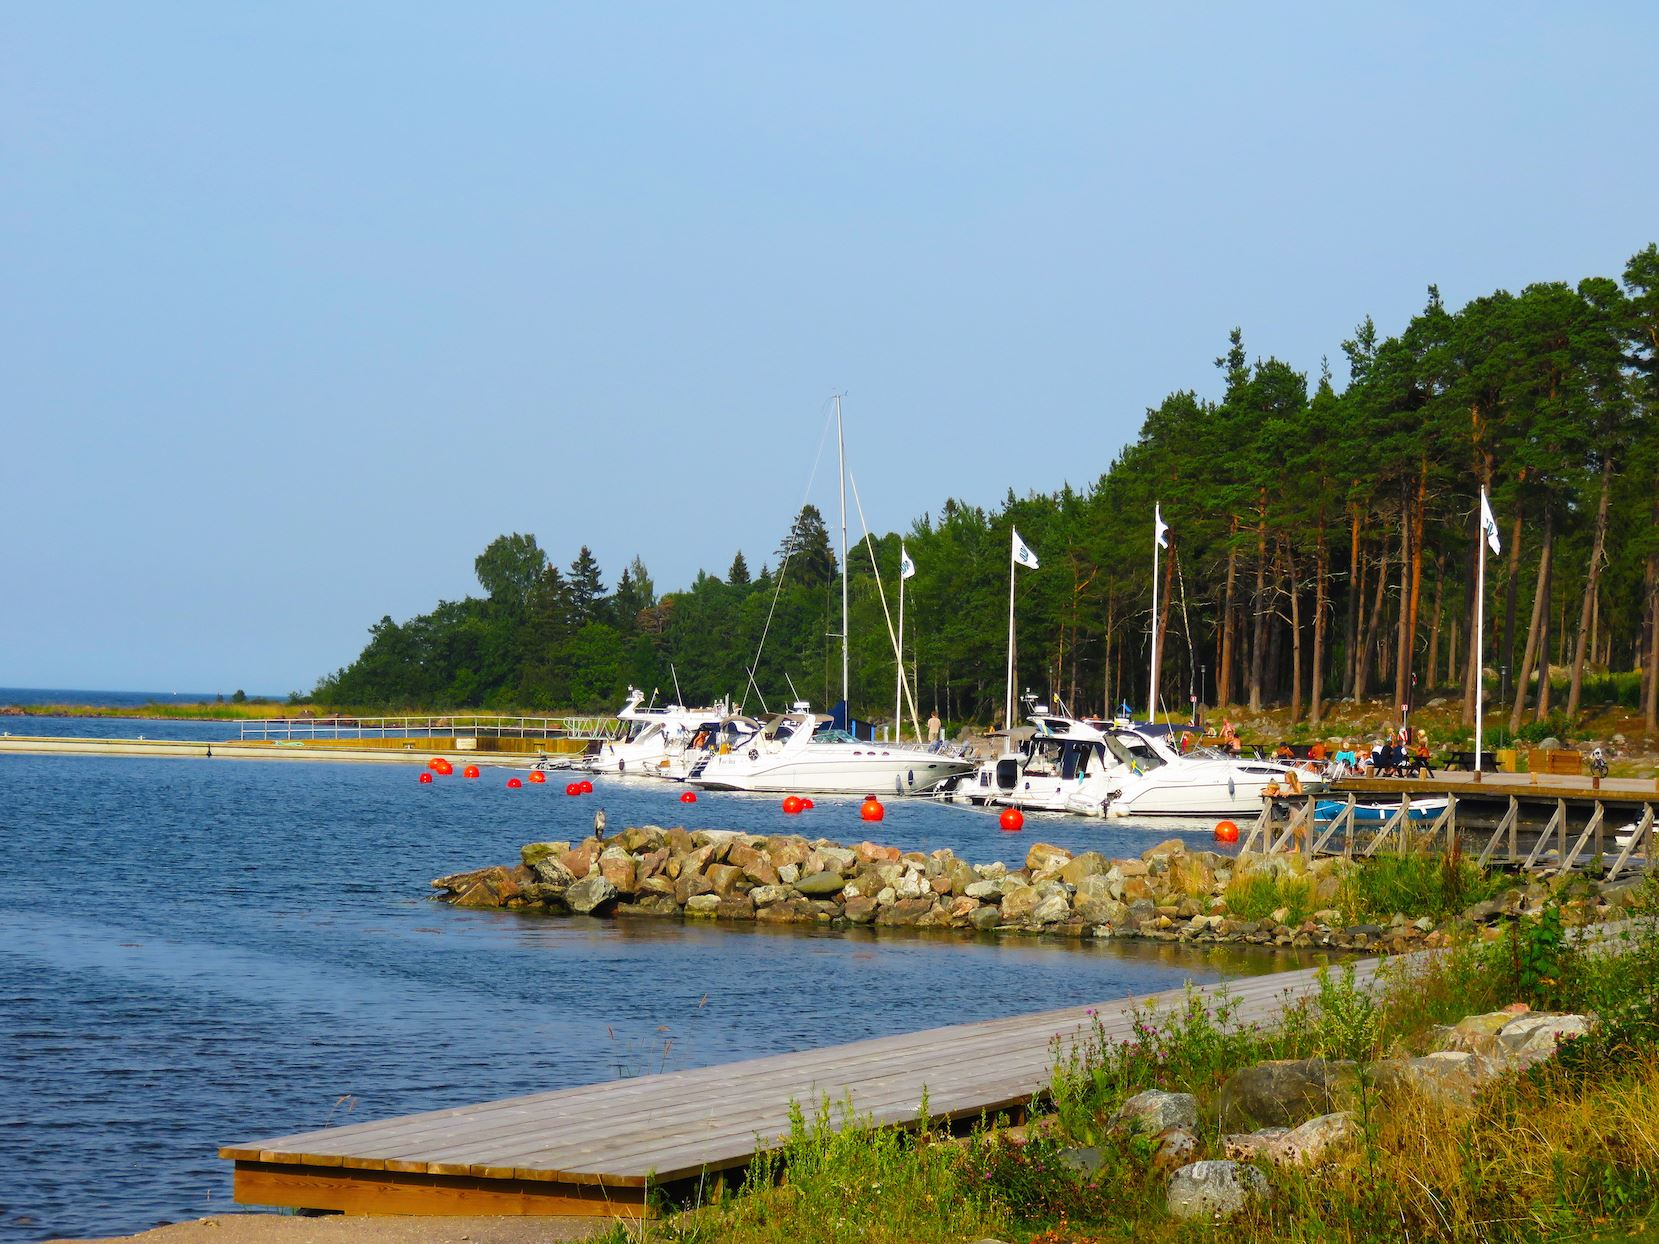 Furuvik's Sea Camping and Guest Marina